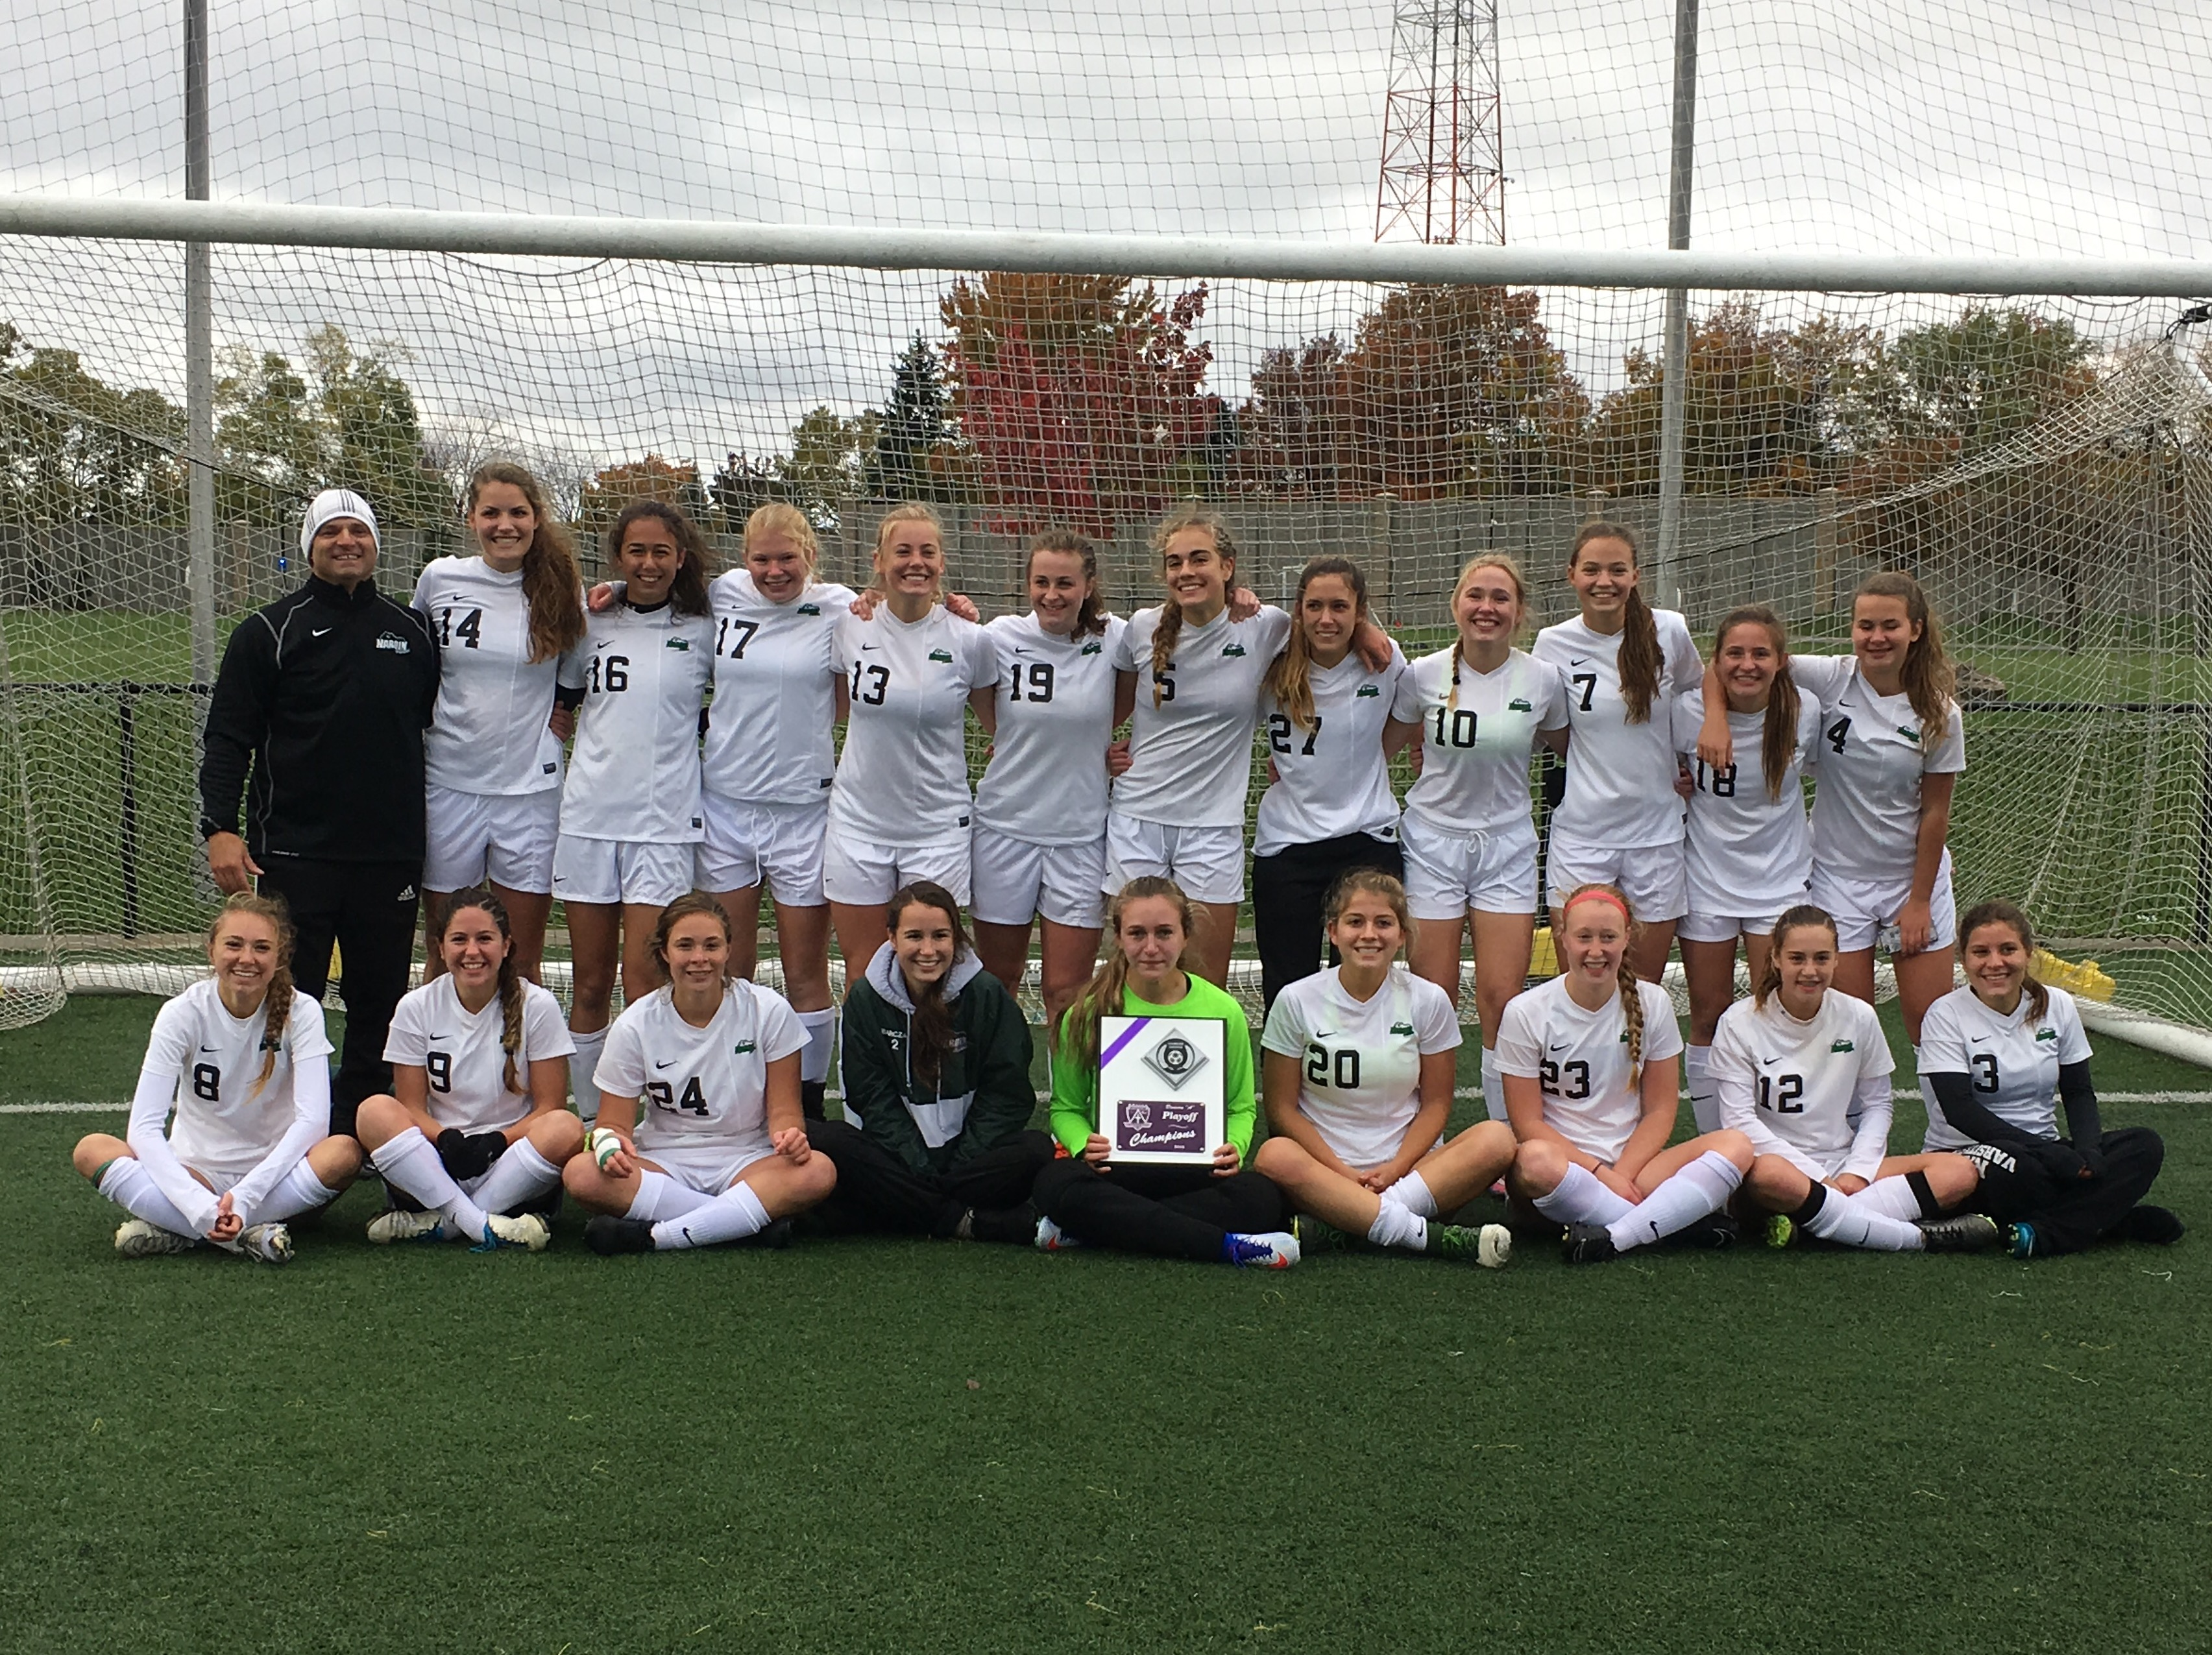 The Nardin girls soccer team won their first Monsignor Martin title since 2013 on Sunday afternoon at Niagara Univeristy.